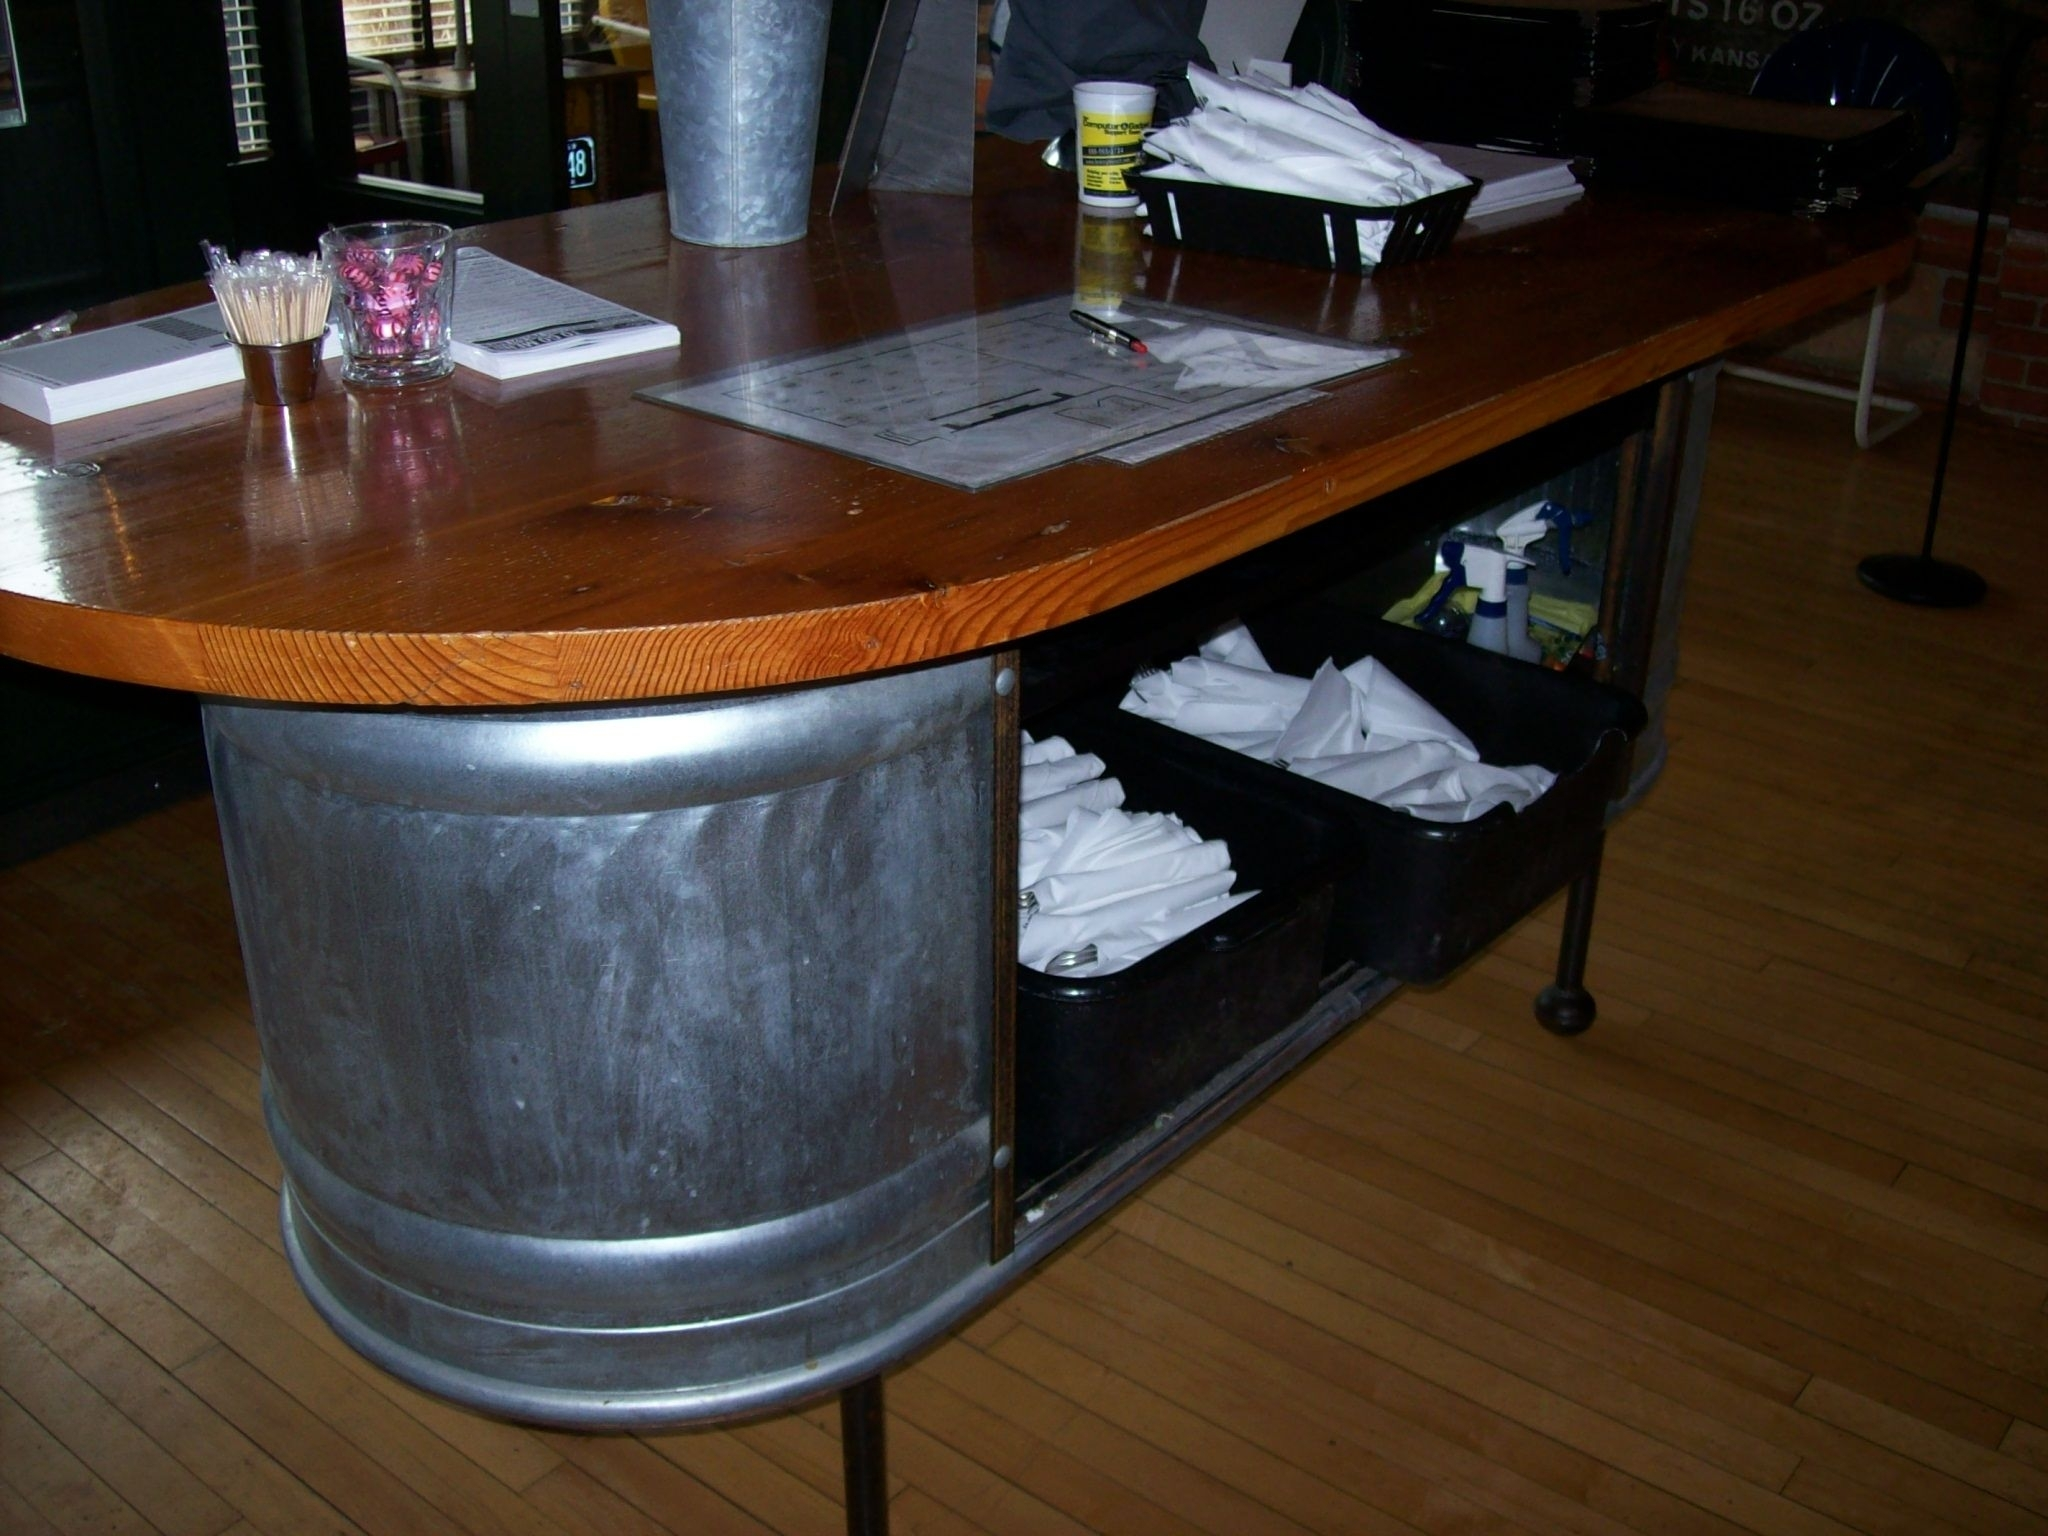 Great Way To Create A Hostess Station Or Check Out Area | Retail Intended For Recent Market 6 Piece Dining Sets With Host And Side Chairs (Image 11 of 20)